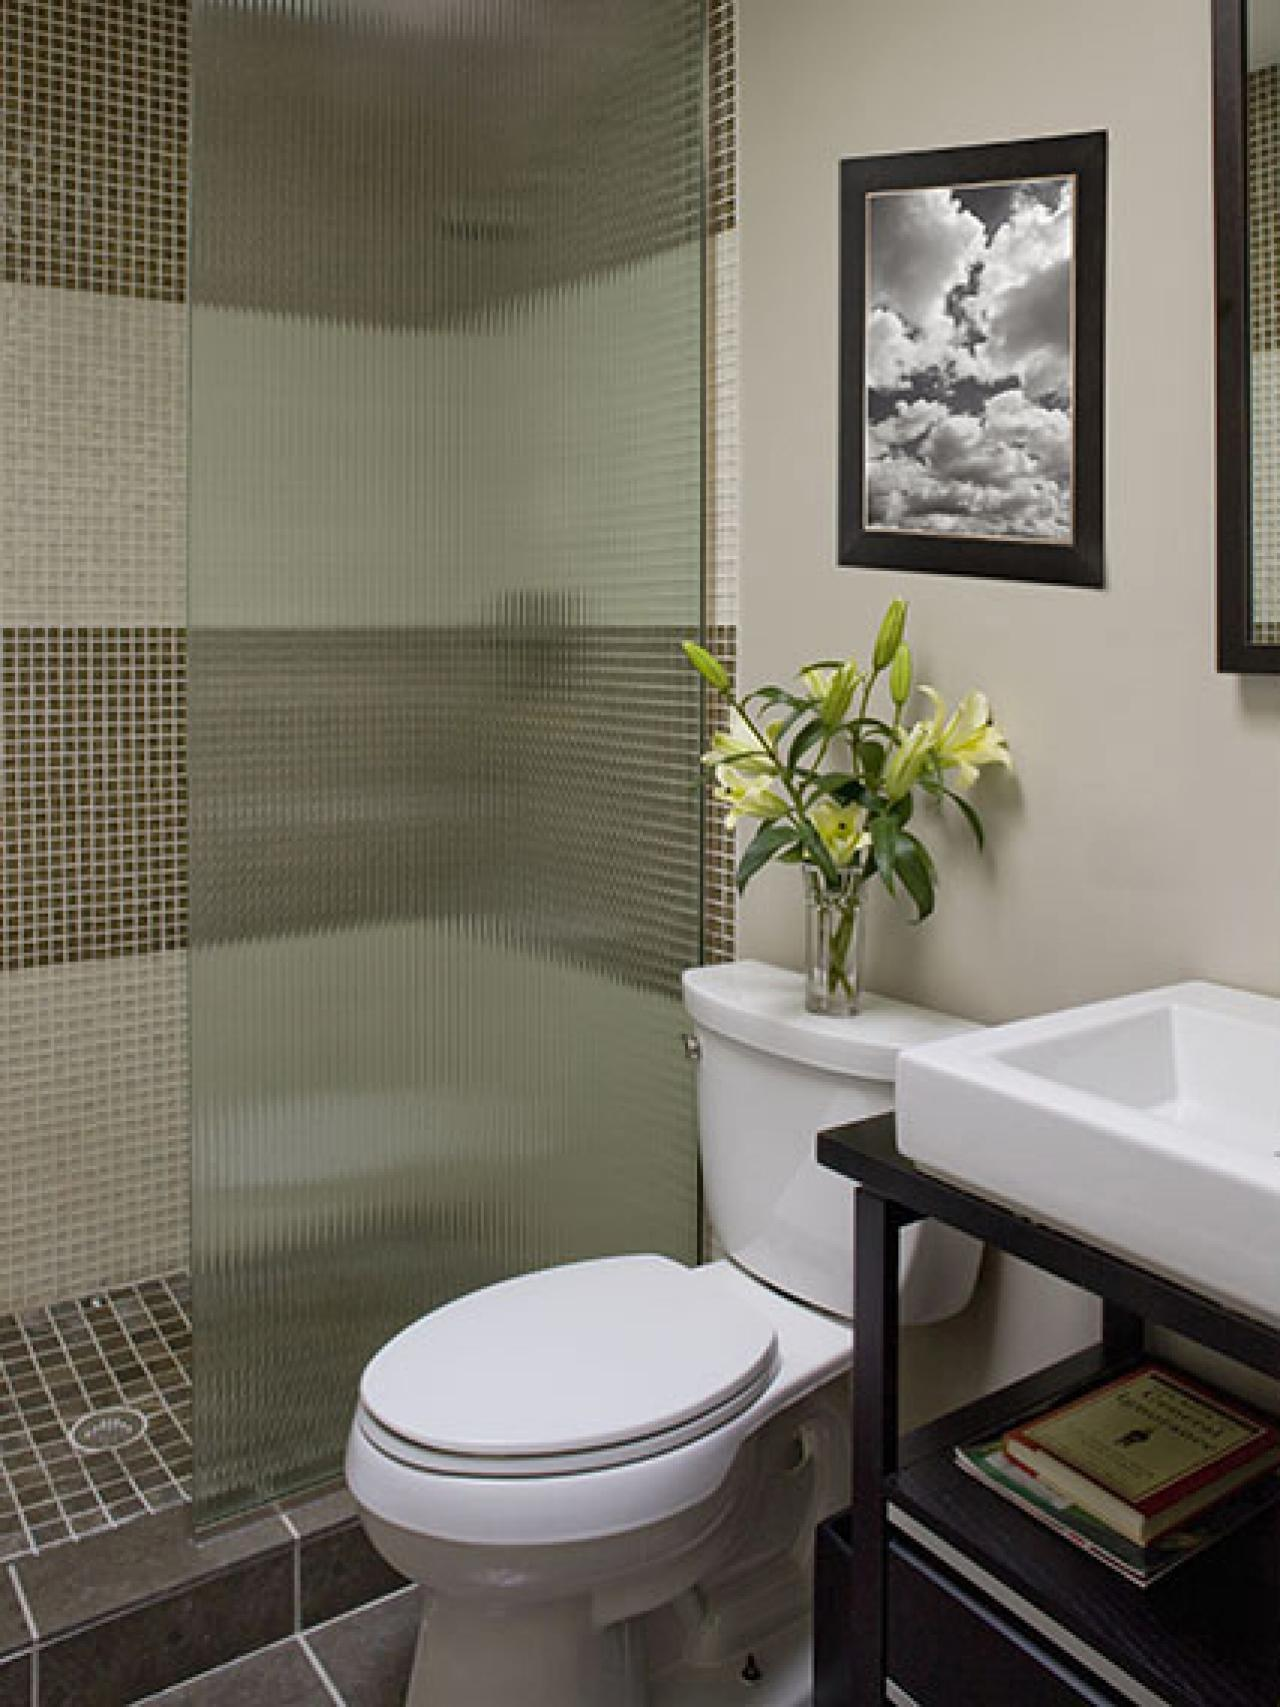 Choosing a bathroom layout hgtv for Bathroom layout design